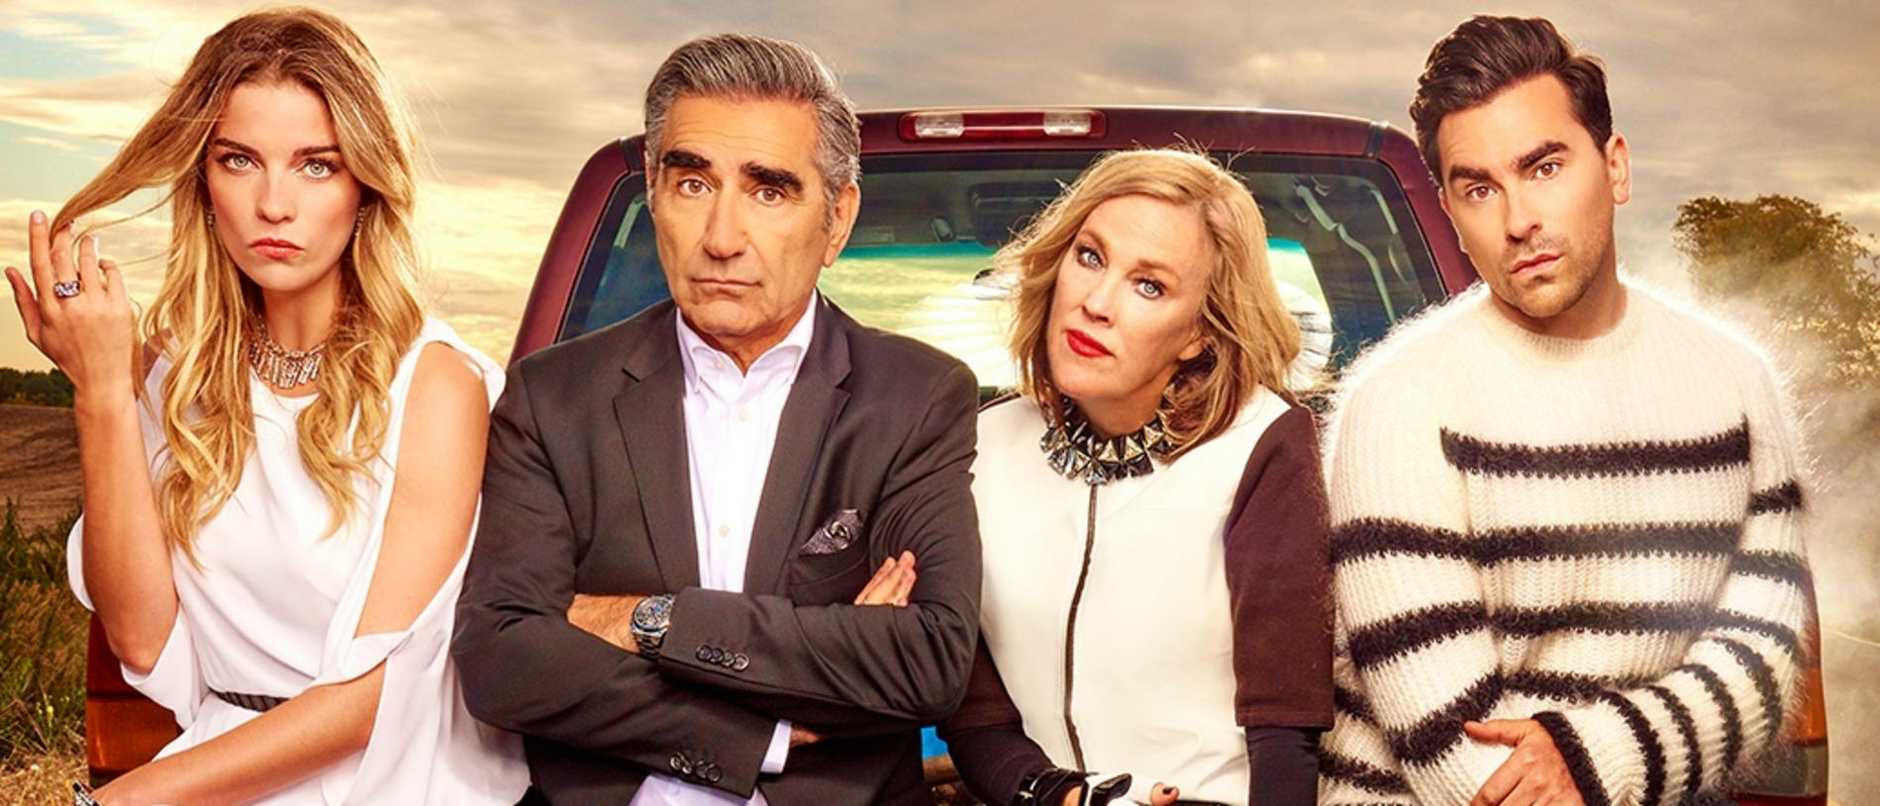 Winners … after sweeping the Emmy awards, the cast of Schitt's Creek, should scoop the Globes. Picture: Supplied/Netflix